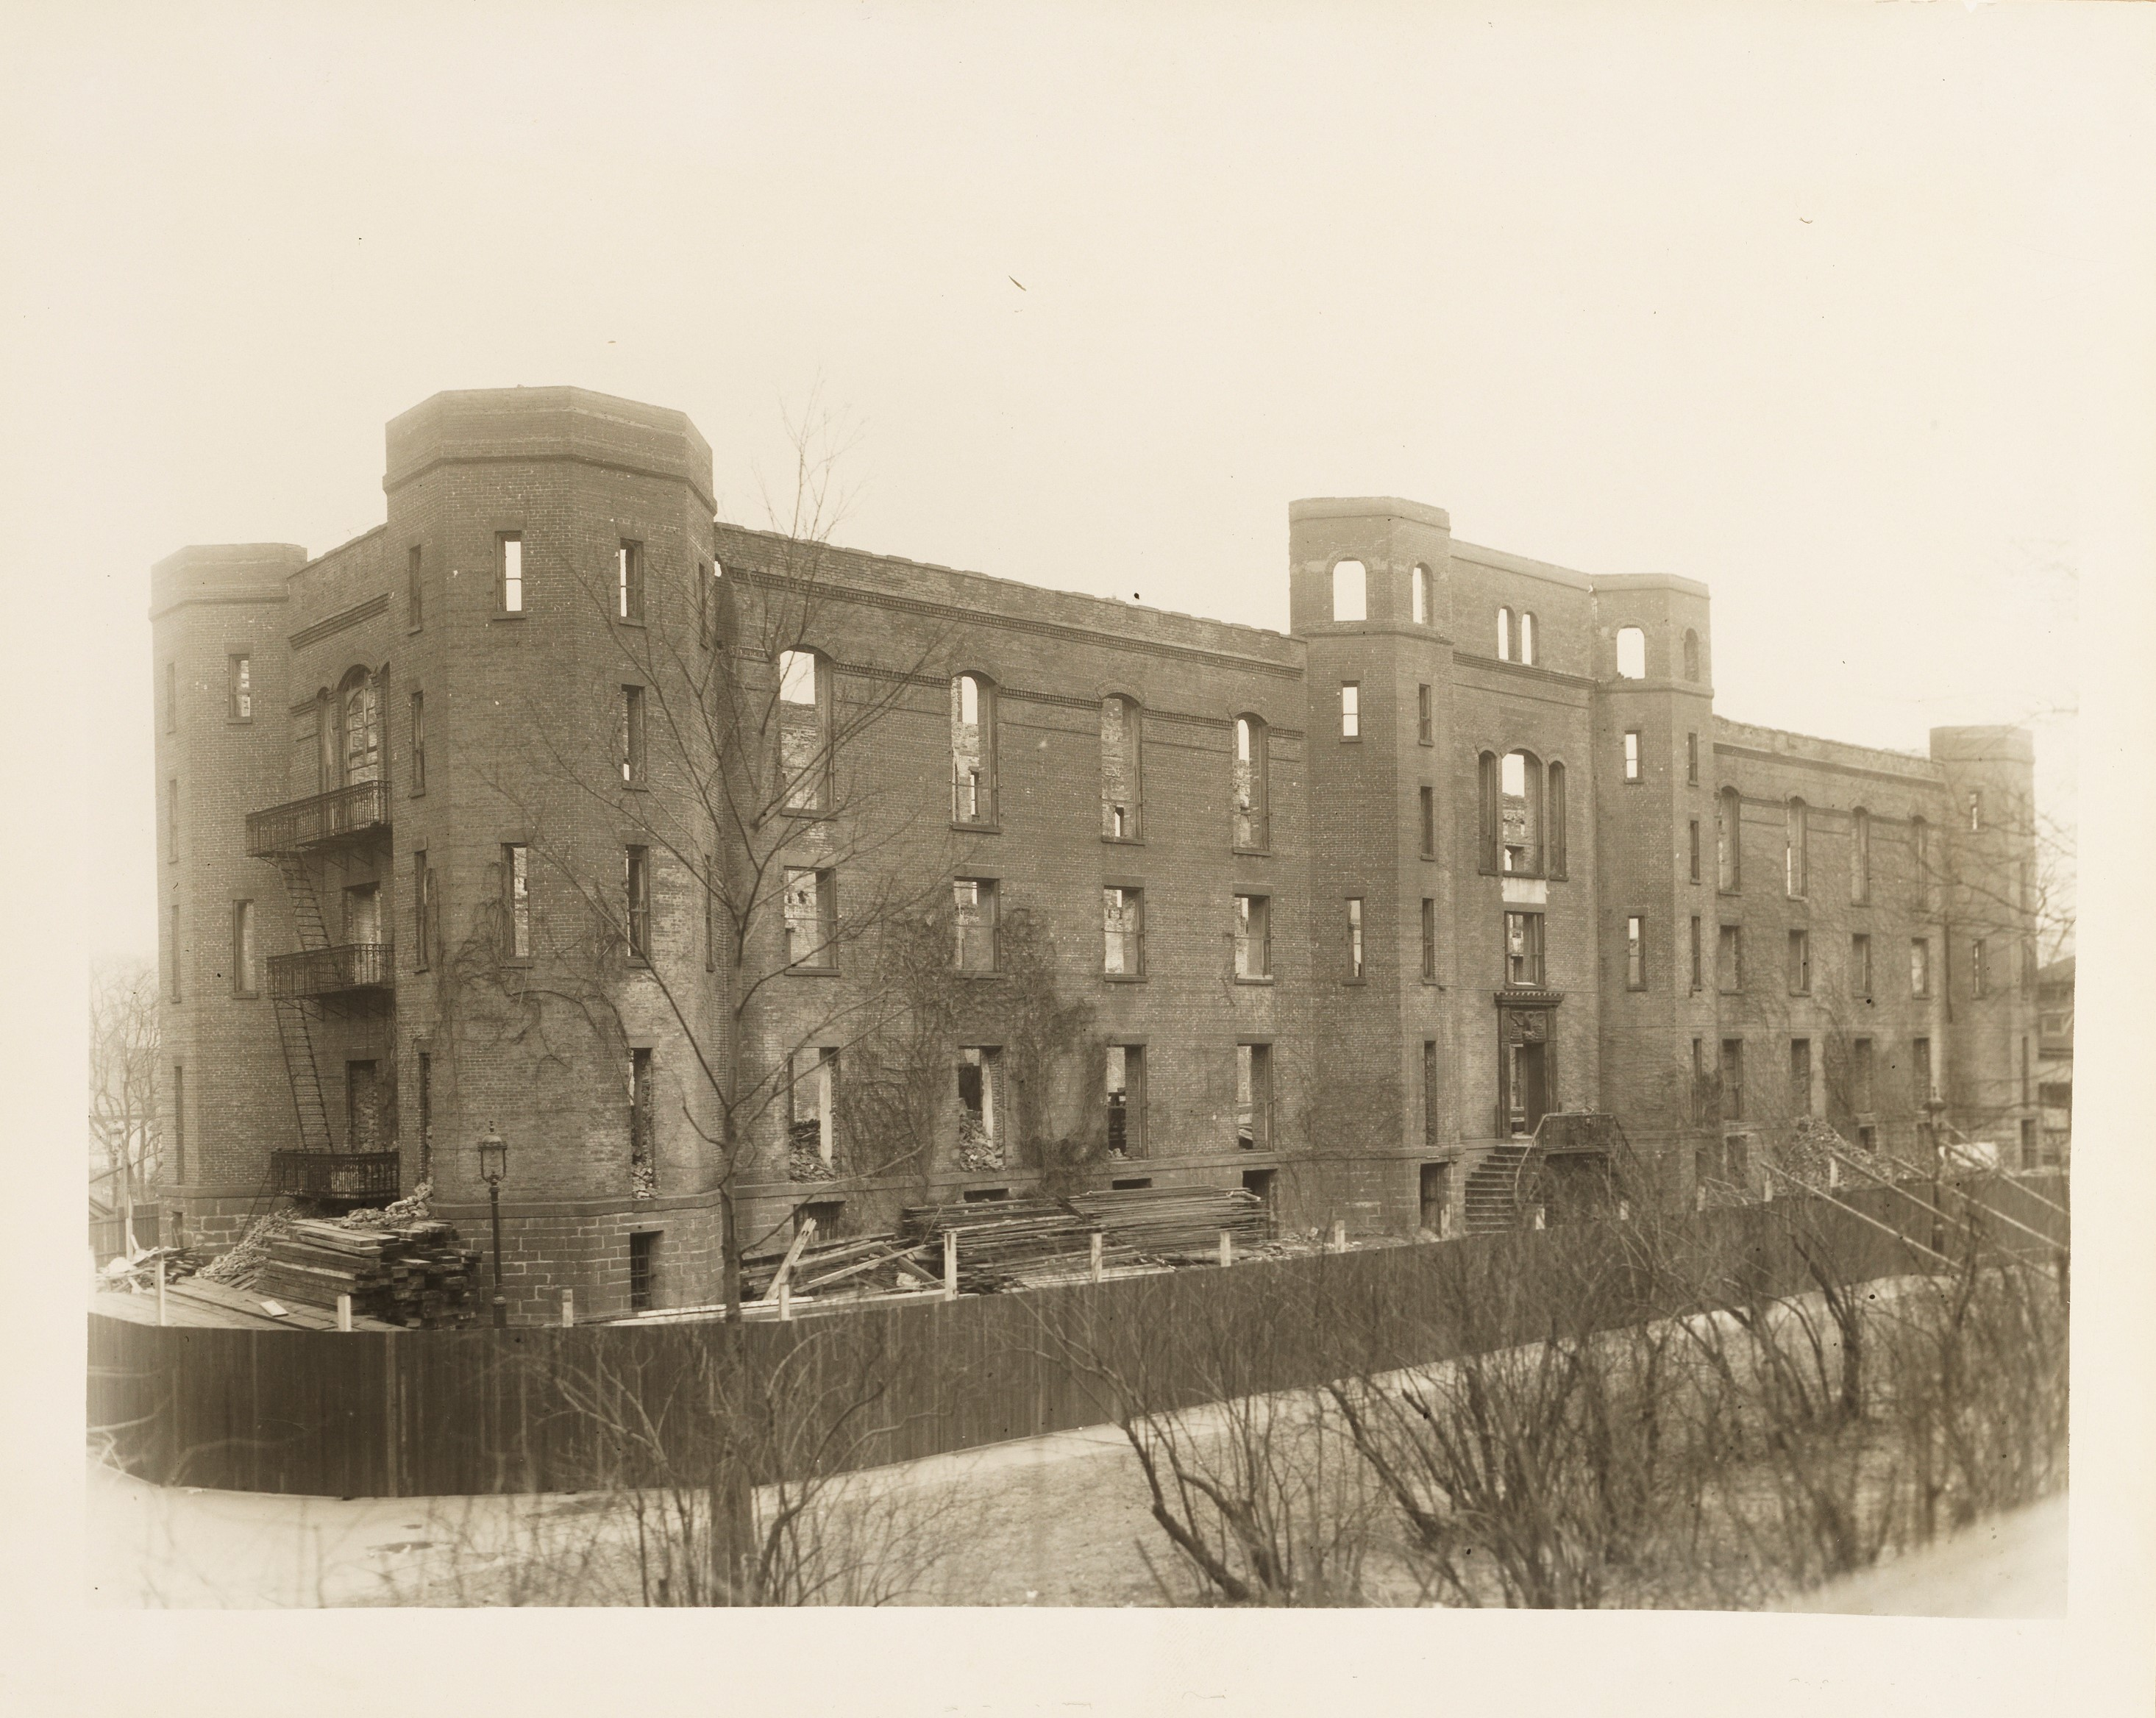 State Arsenal, Central Park, opposite E. 64th Street from the South East and from the North East. | J. Clarence Davies Street Views Scrapbook